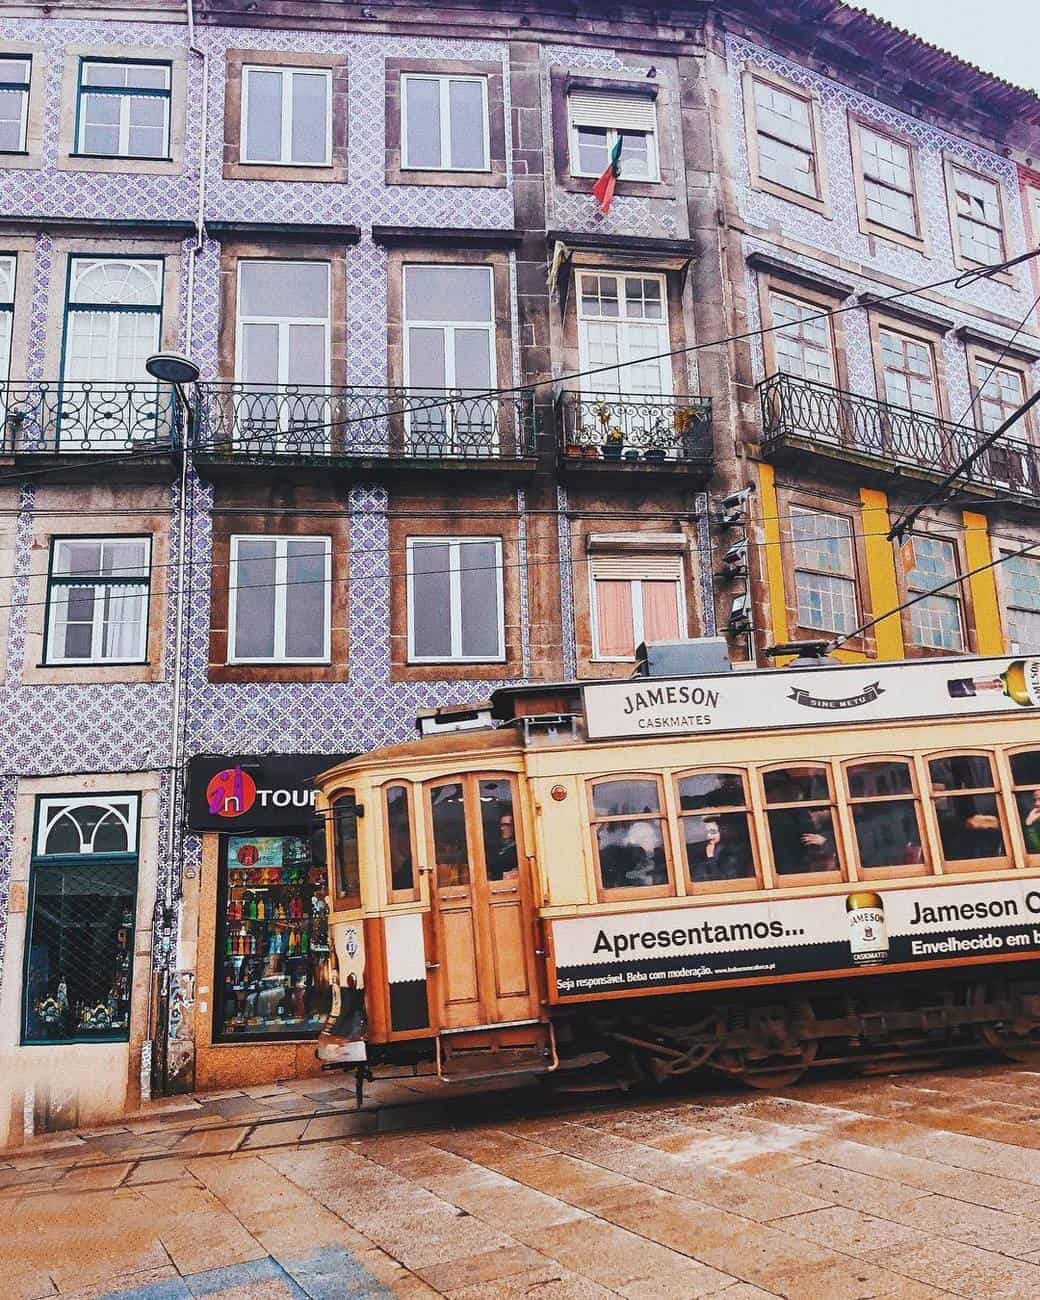 Weekend in Porto in winter